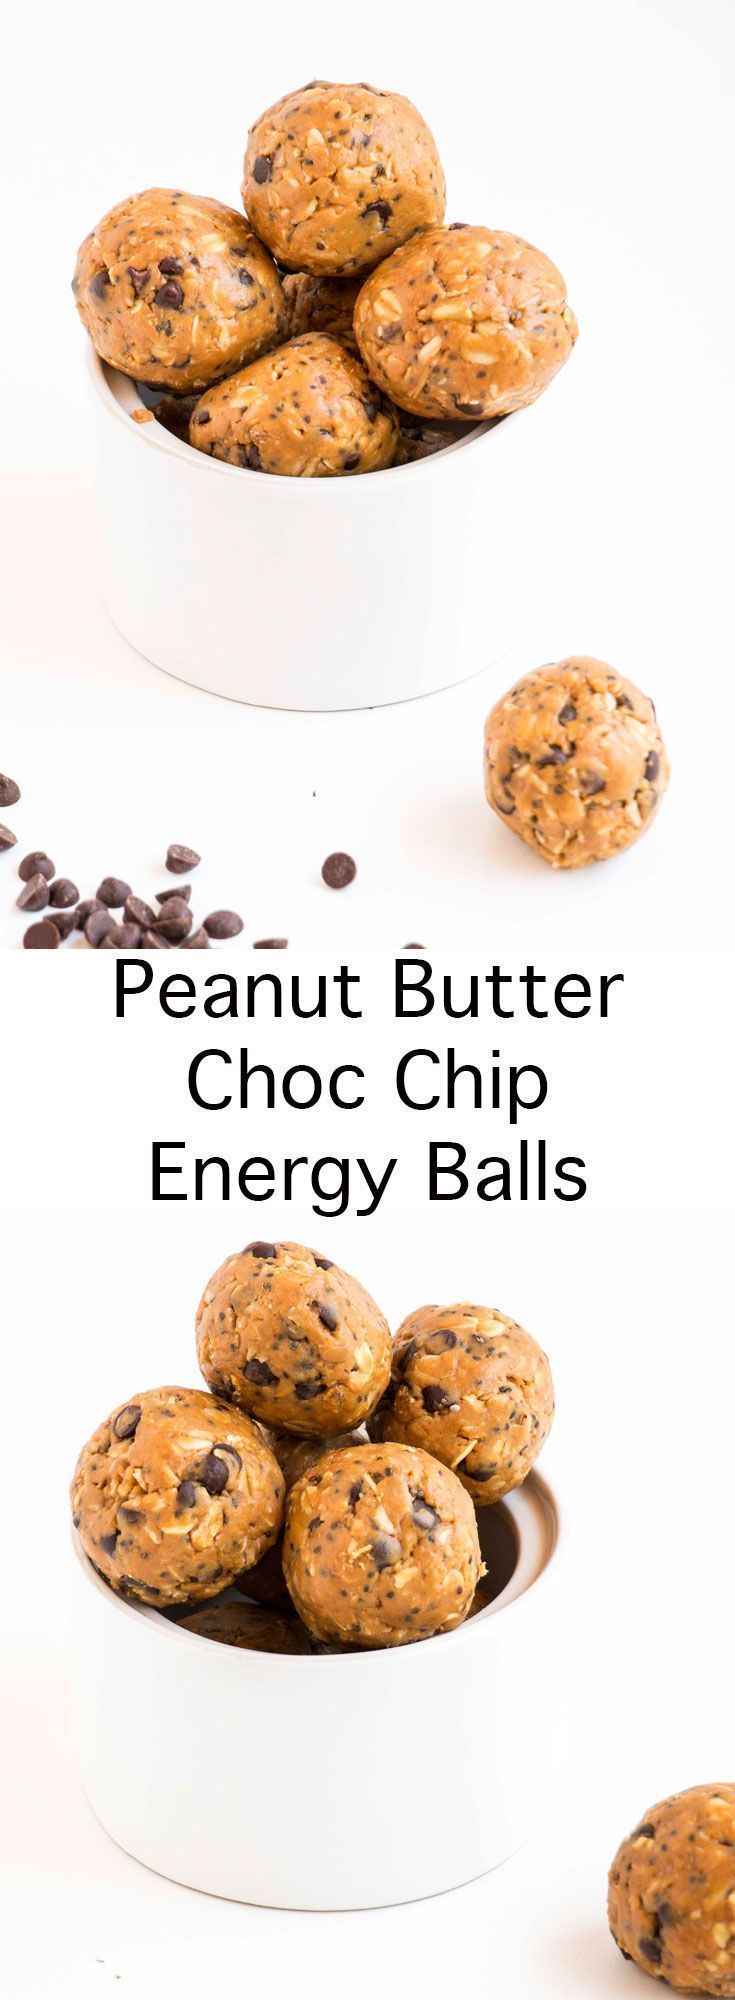 I love these NO bake, gluten free, vegan and protein packed Peanut Butter Choc Chip Energy Balls. They are so quick and easy to make and are the perfect post workout snack.